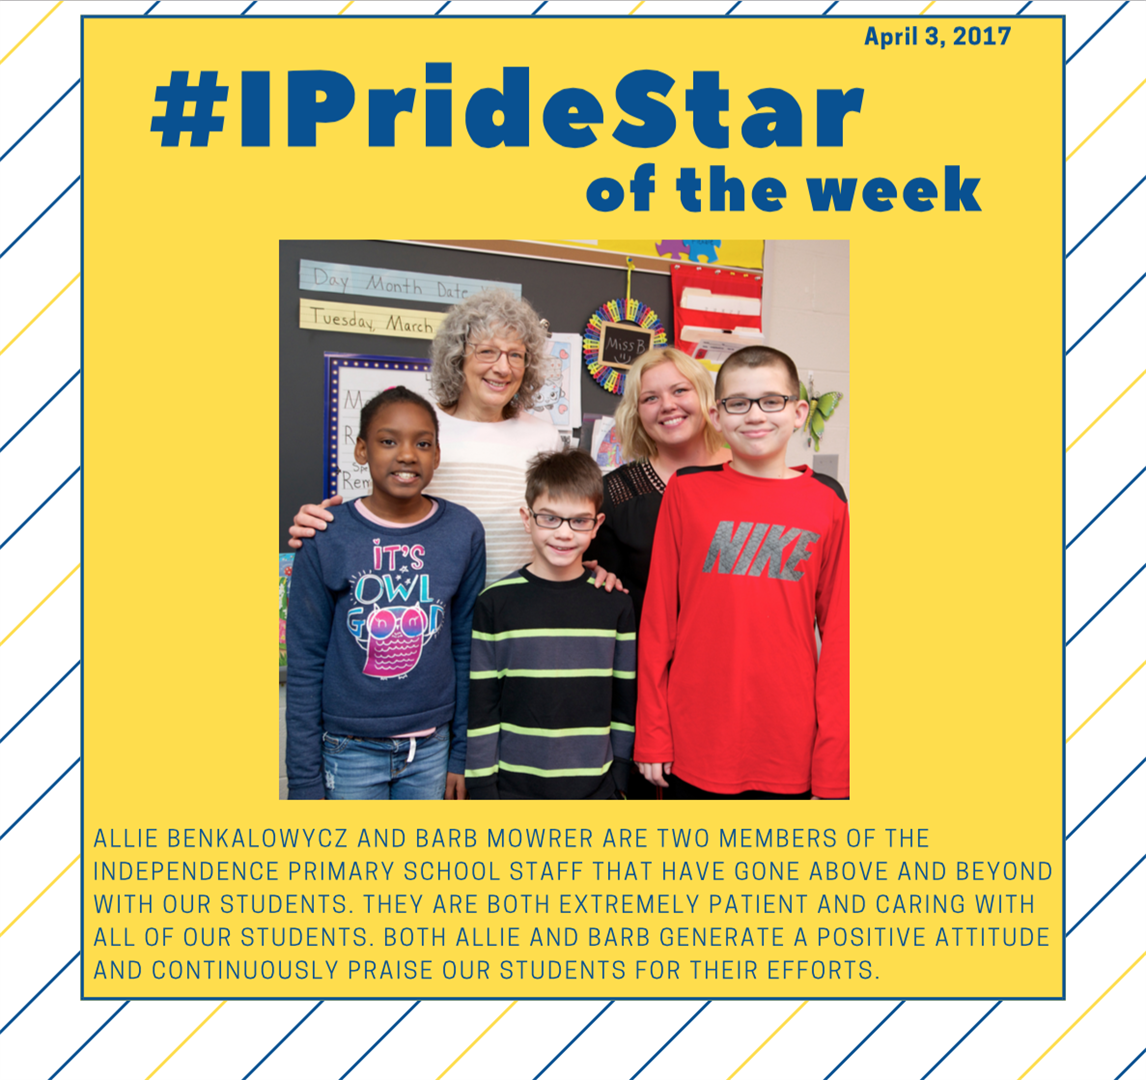 Allie Benkalowsycz and Barb Mowrer IPRIDE Star of the Week april 3, 2017